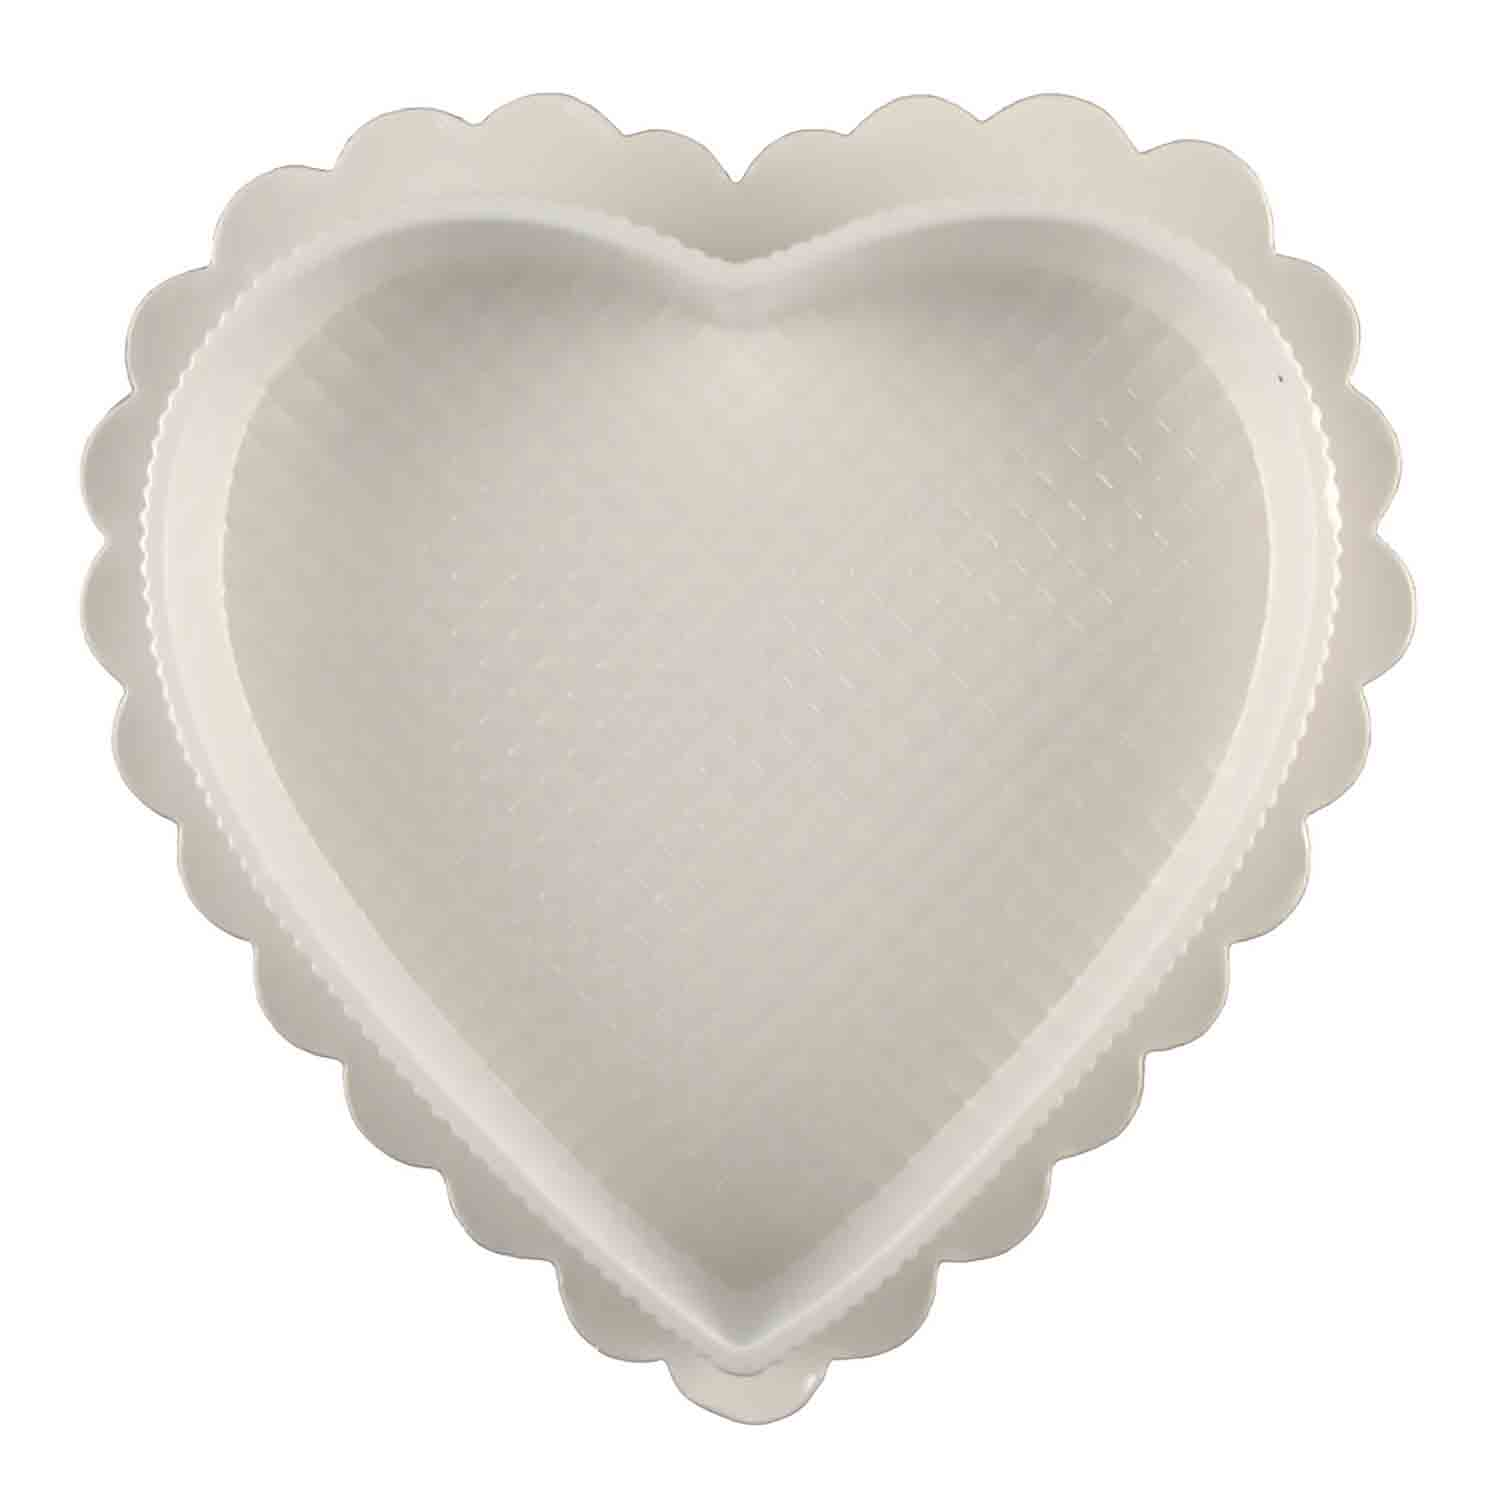 1/4 lb. White Heart Candy Box with Clear Lid